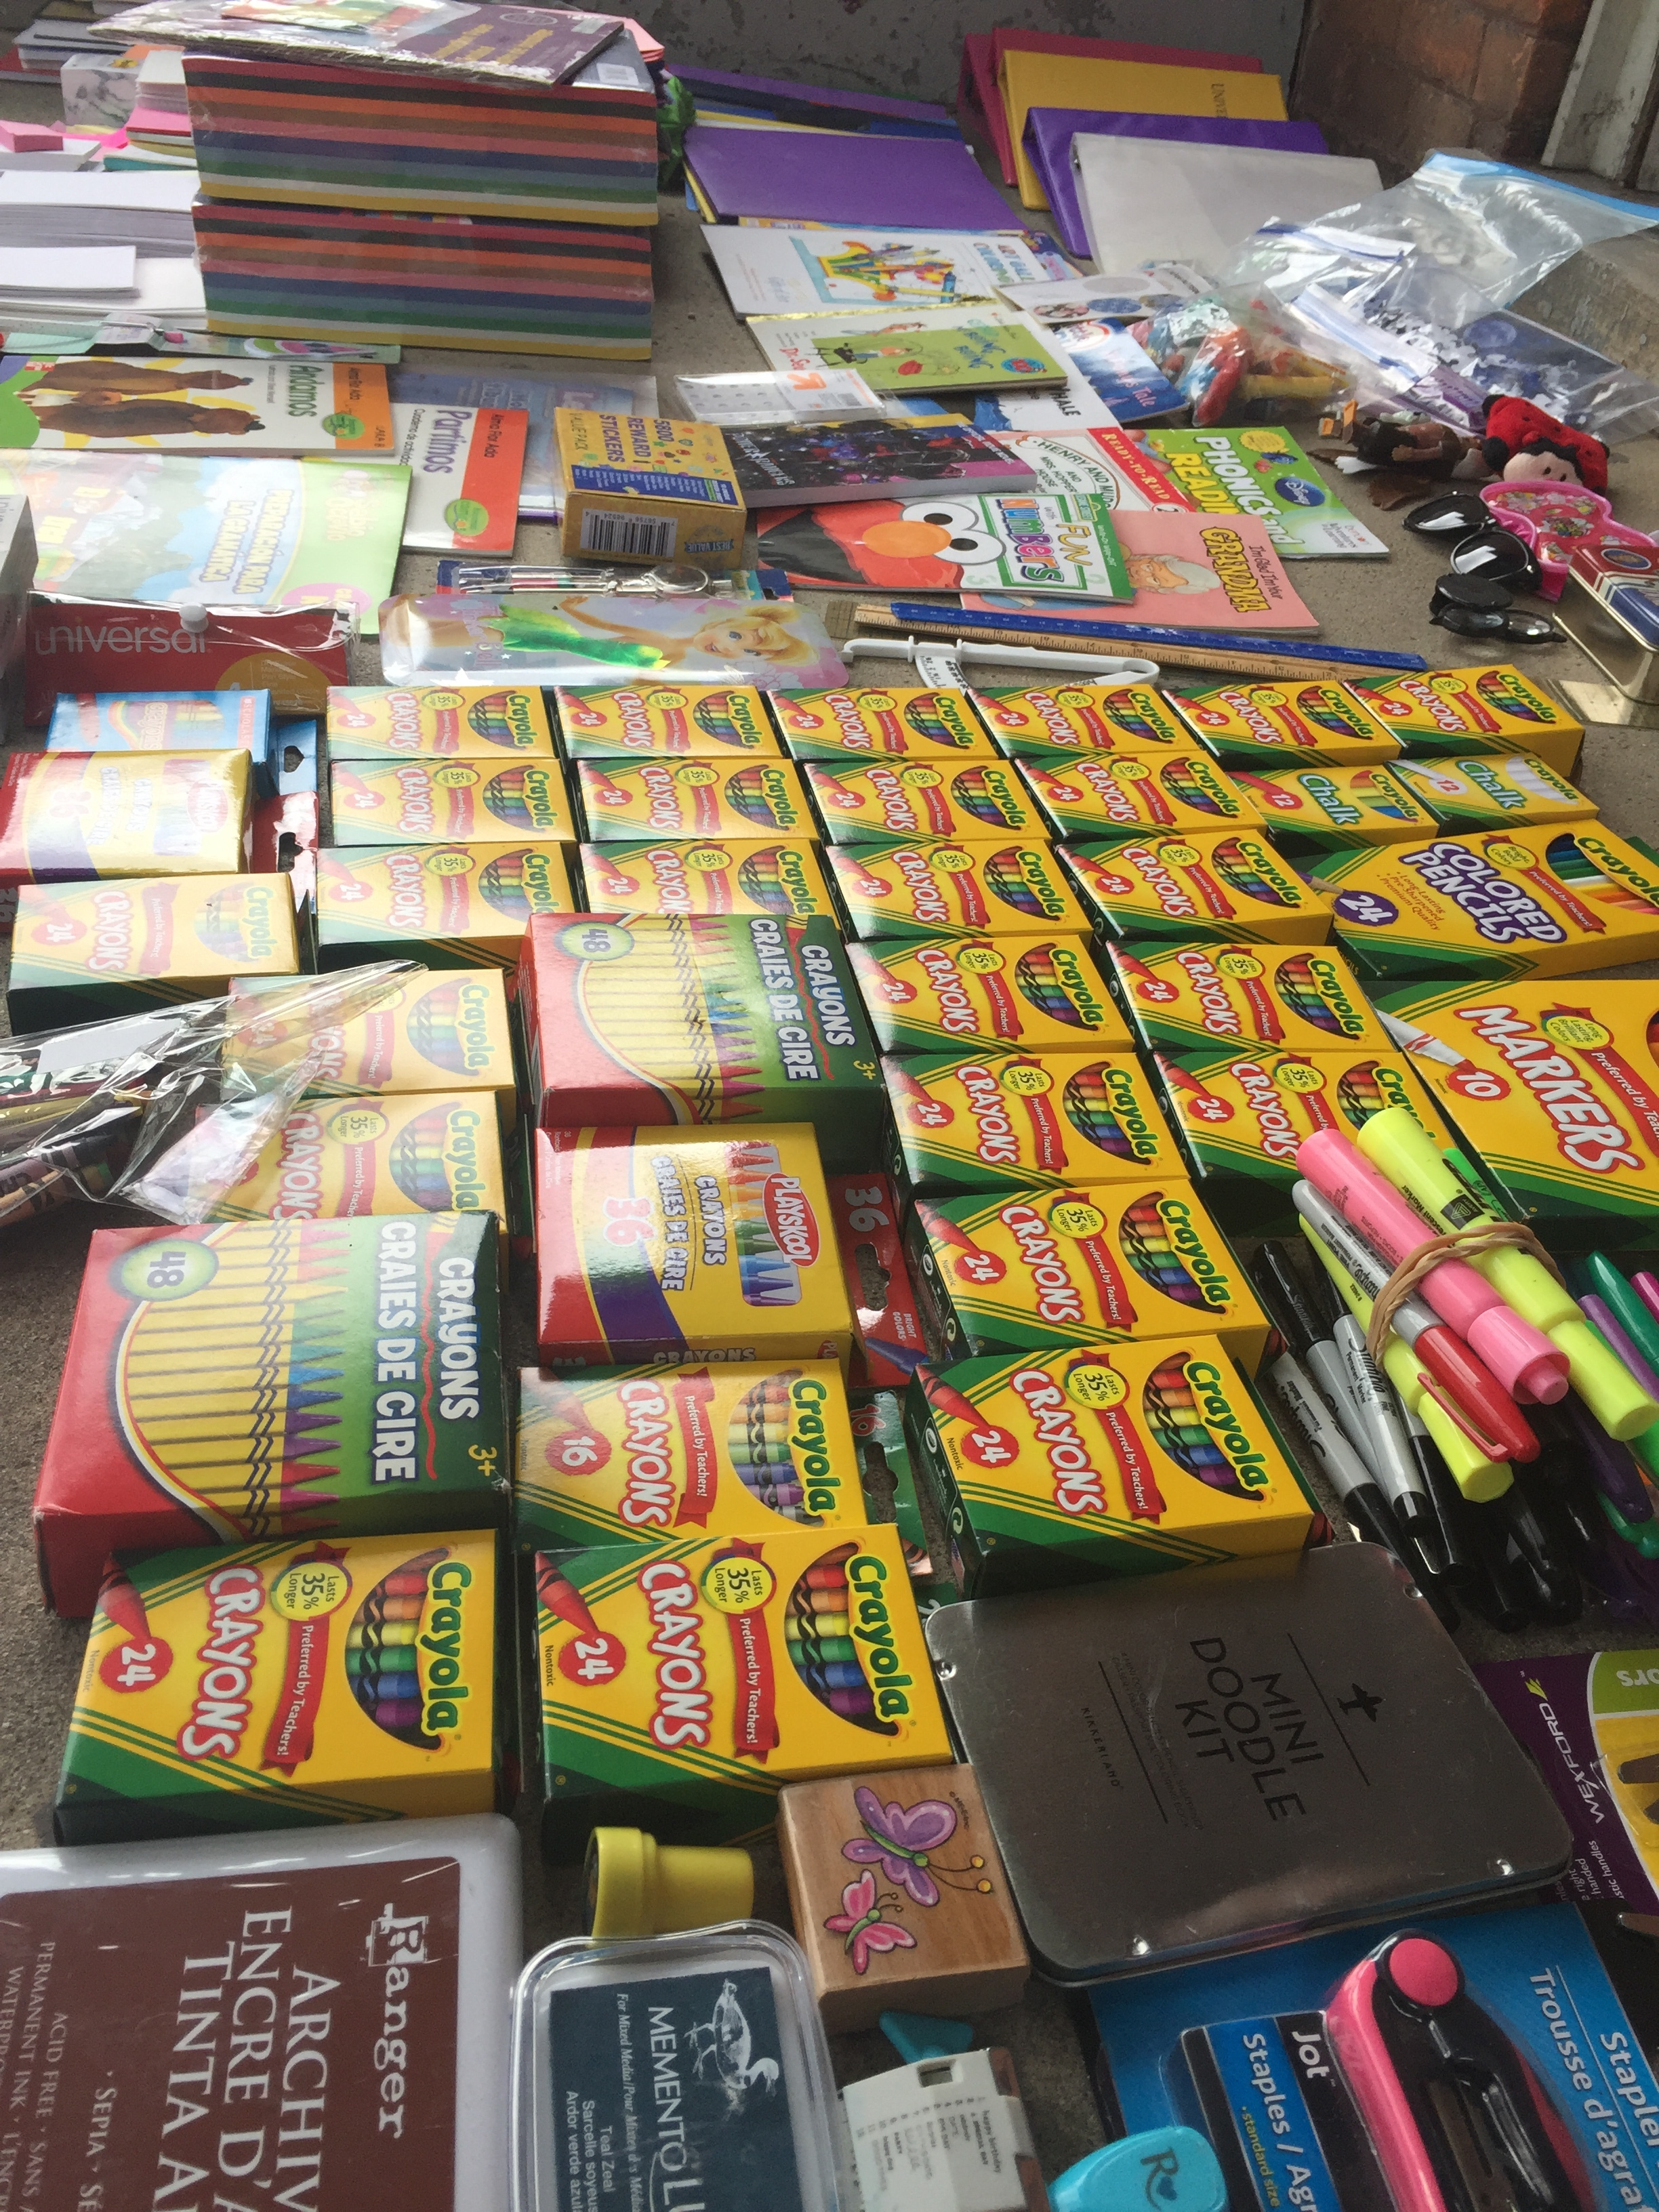 84 Boxes of Crayons - Donated by generous individuals at UM and Scarlett Middle School